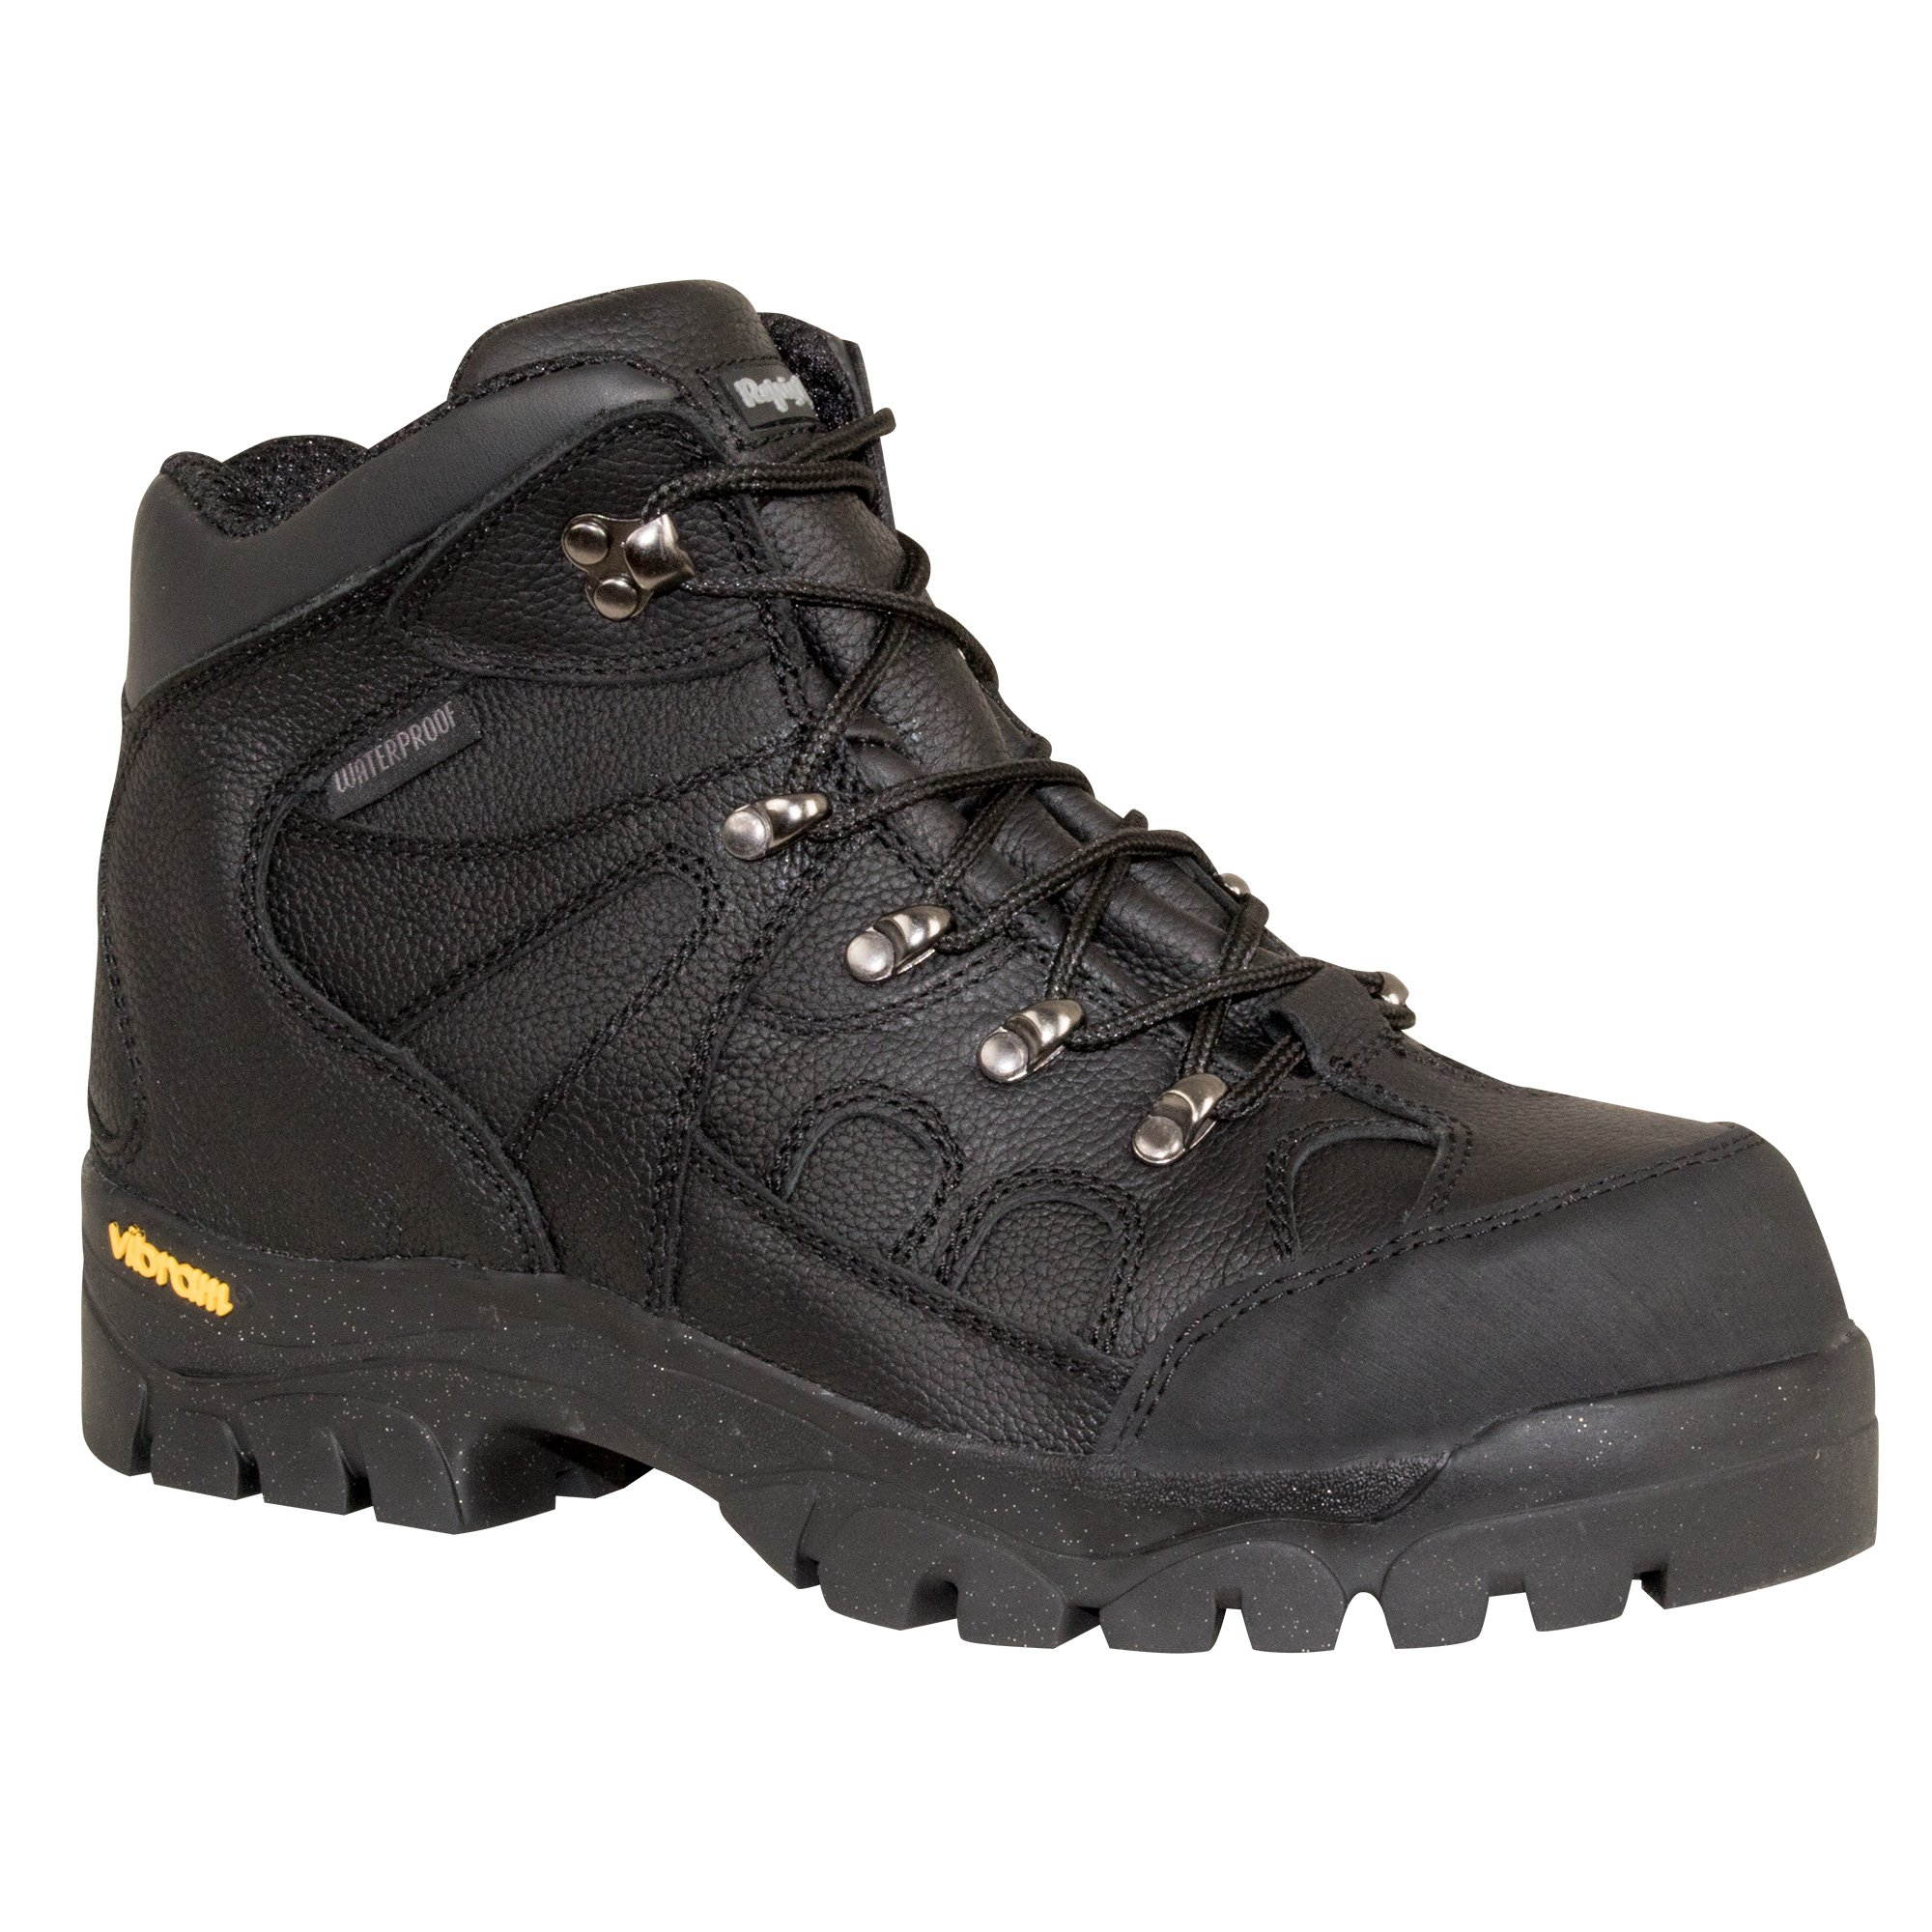 RefrigiWear Men's Endurmax Boot, Black, 10.5 US by Refrigiwear